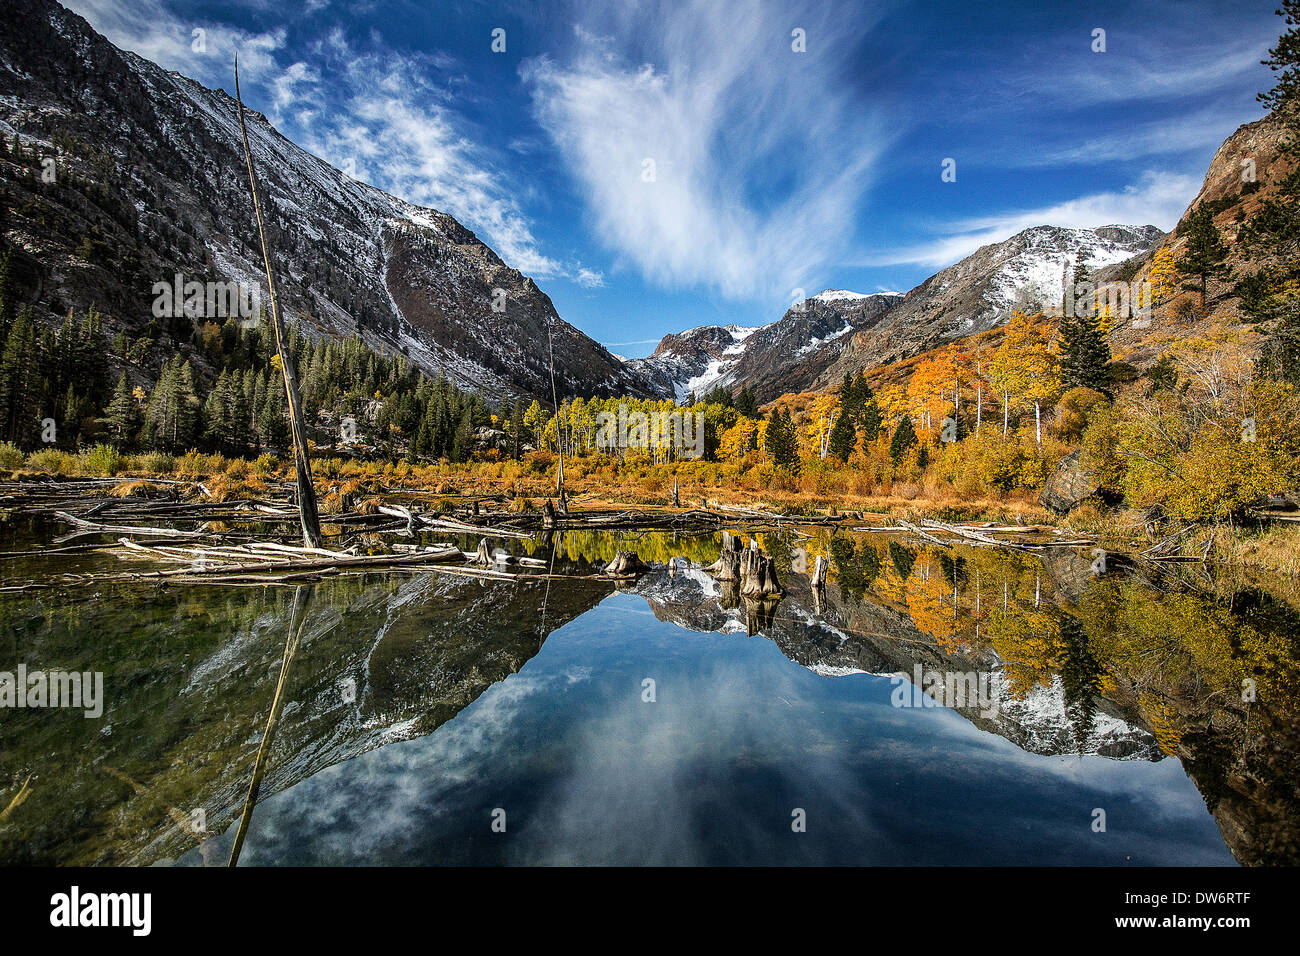 Beaver pond, Lundy Canyon, Sierra Nevada Mts, California - Stock Image